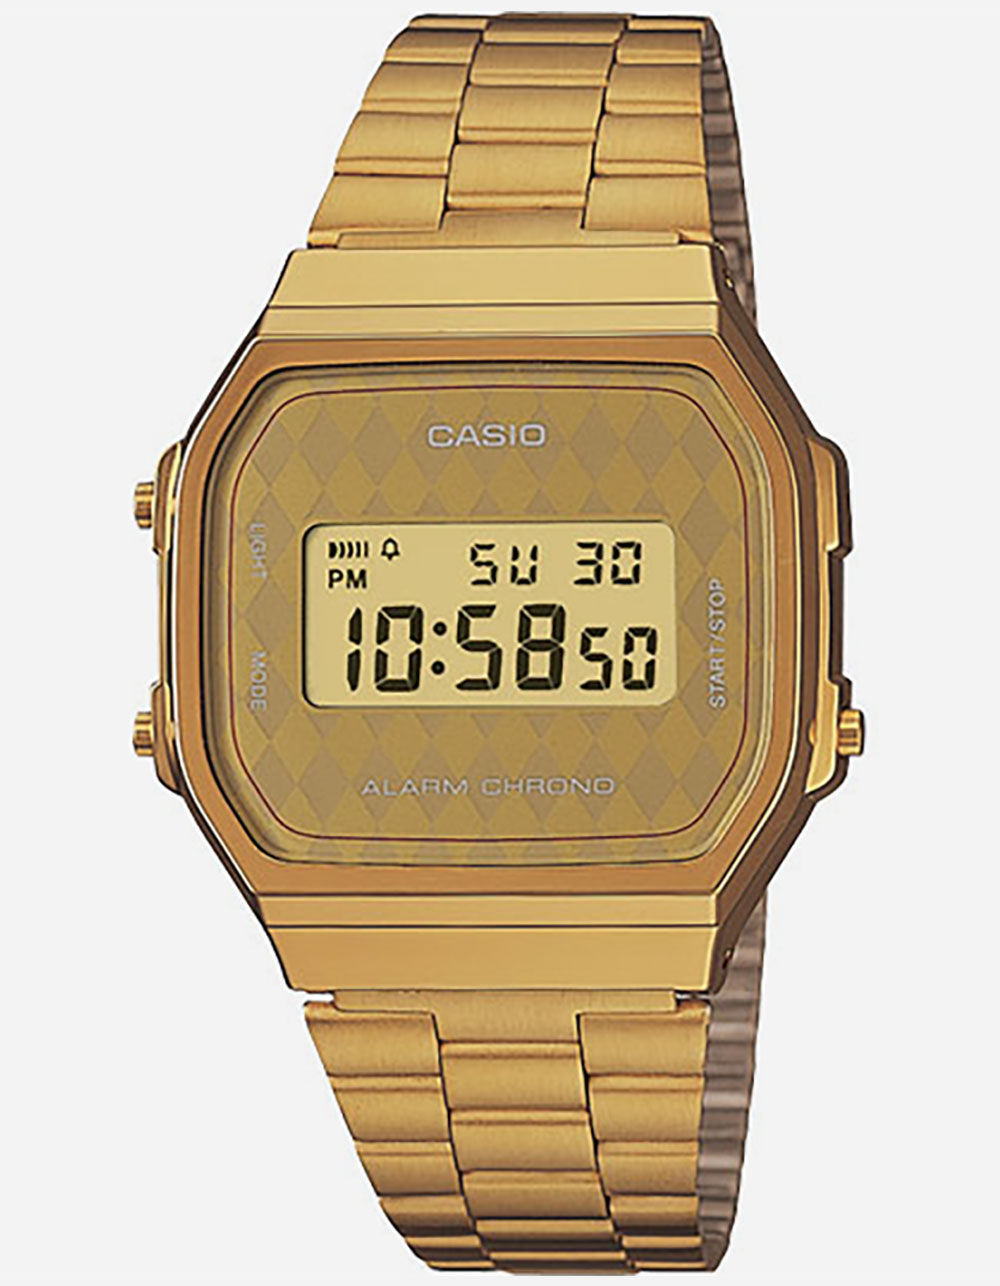 Image of CASIO VINTAGE COLLECTION A168WG-9BVT WATCH